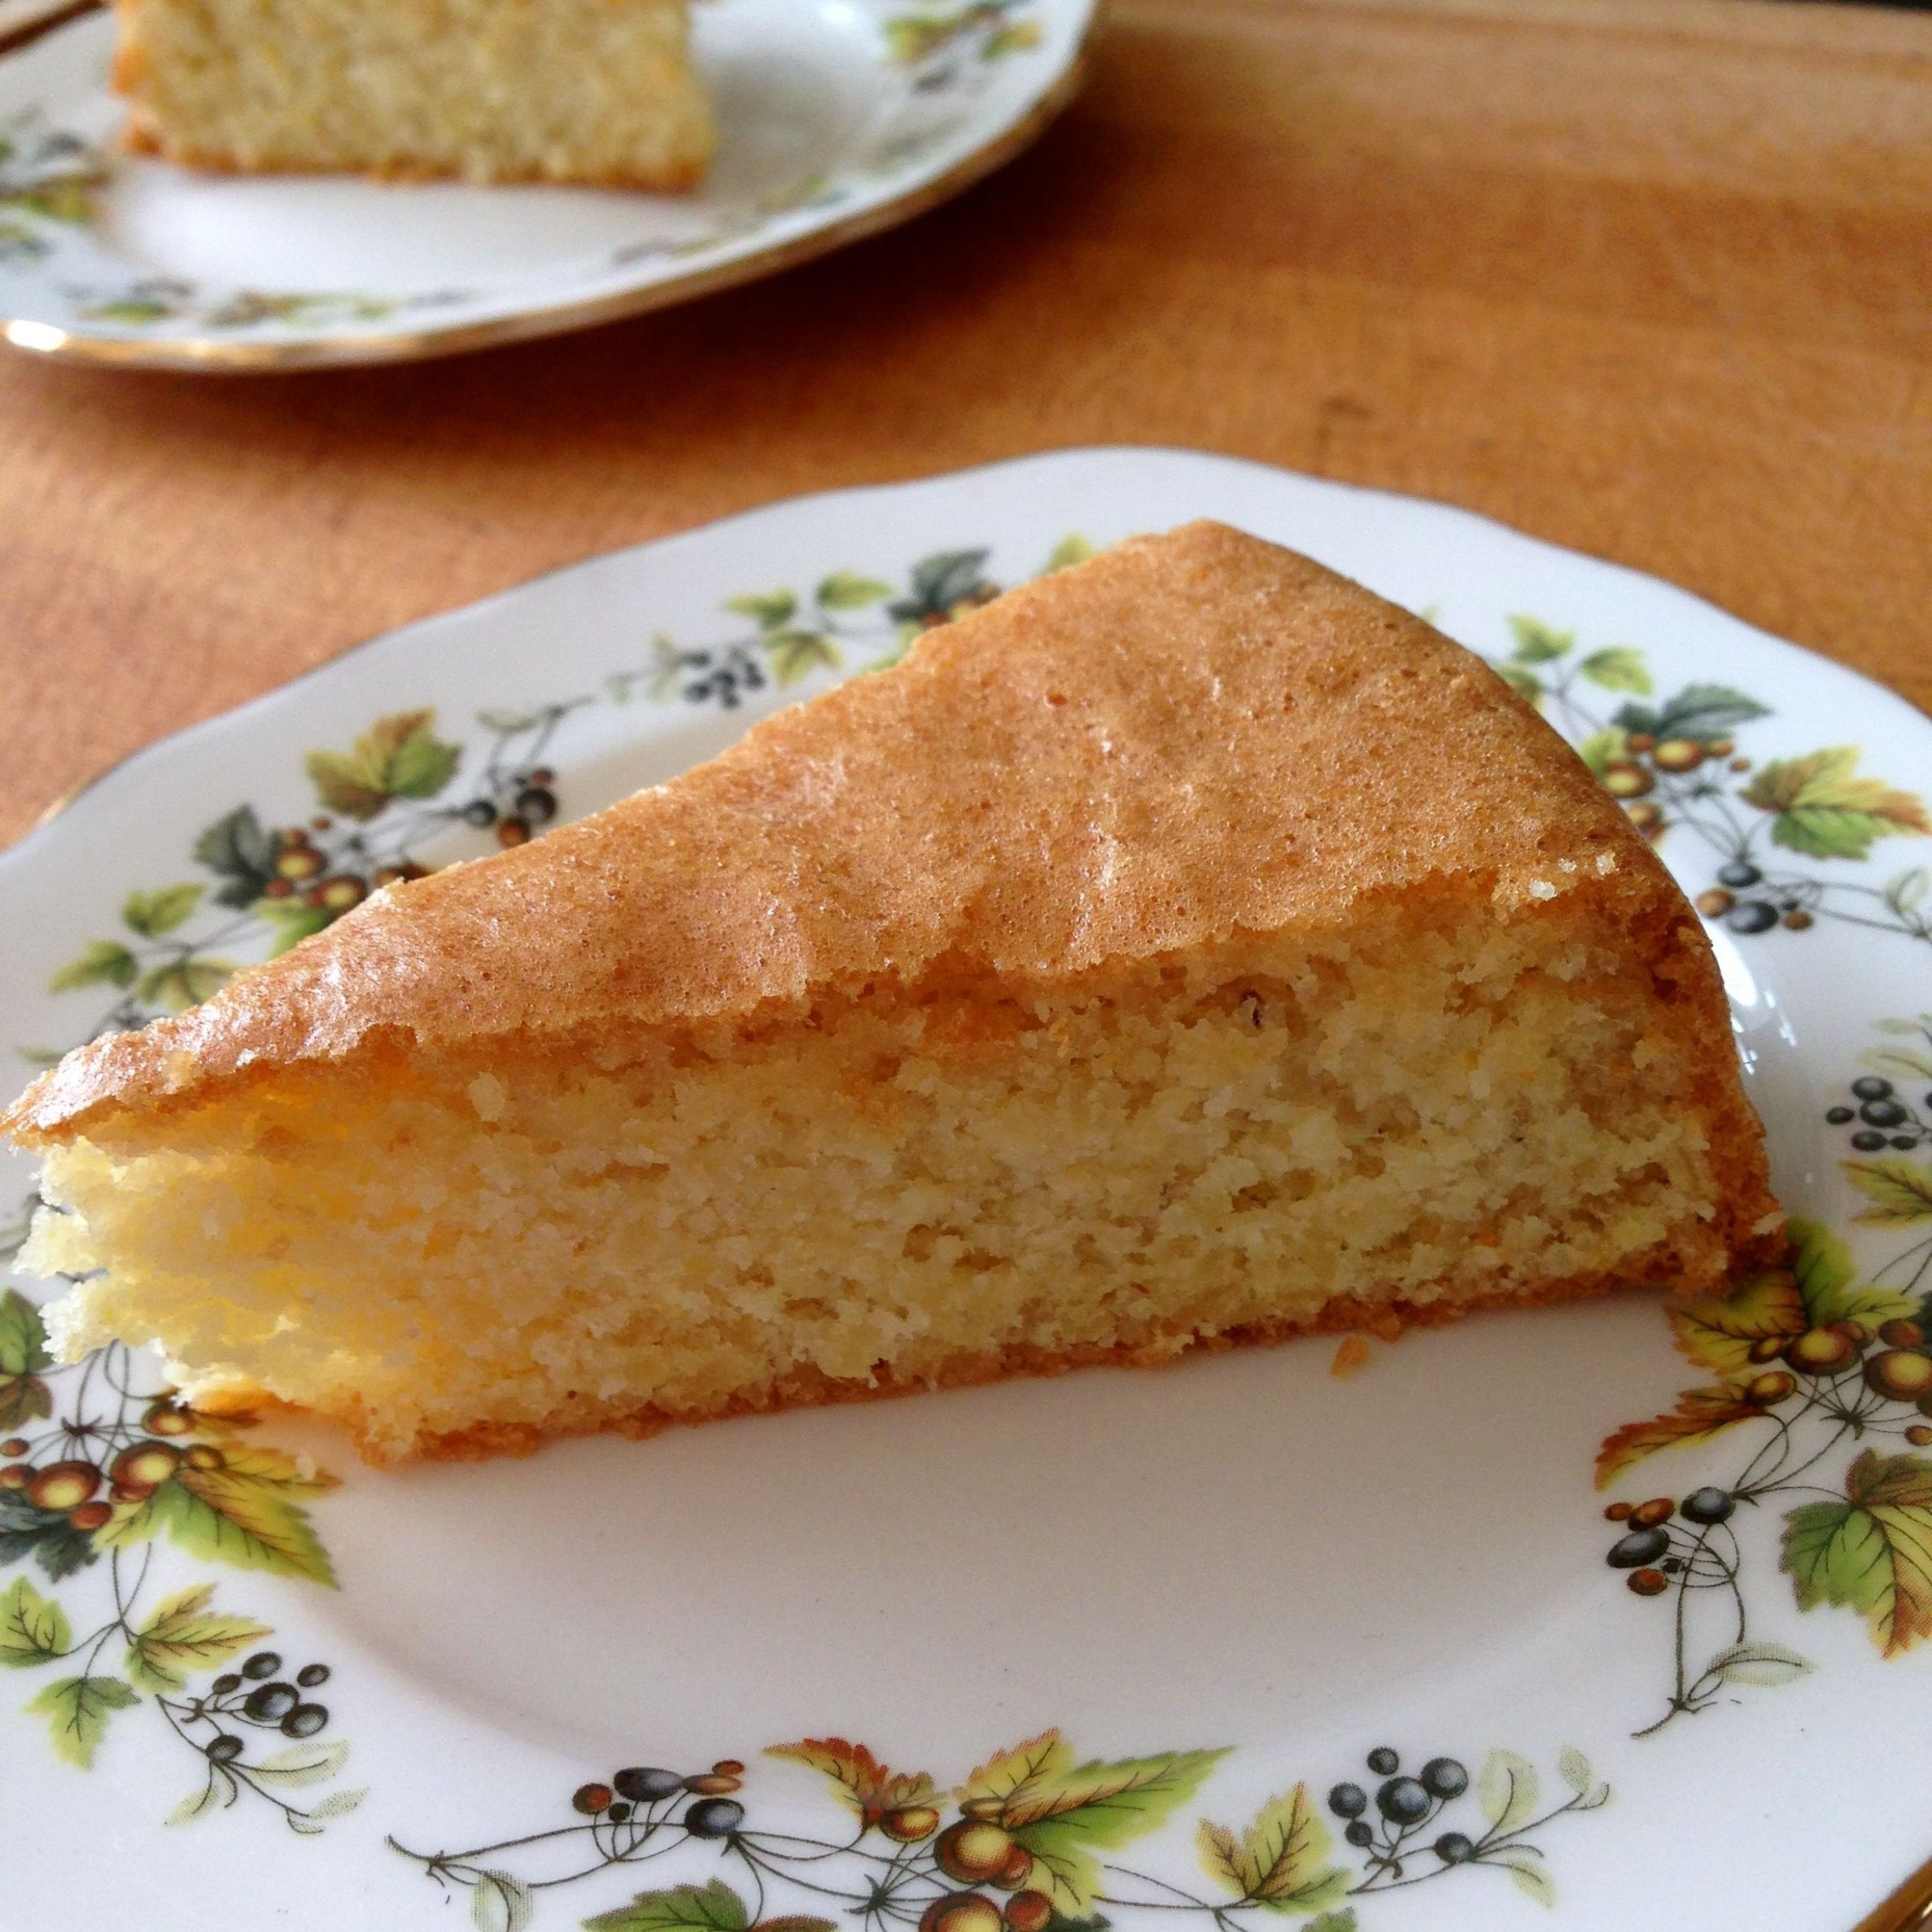 A delicious sugar-free and gluten-free lemon and almond cake that ..